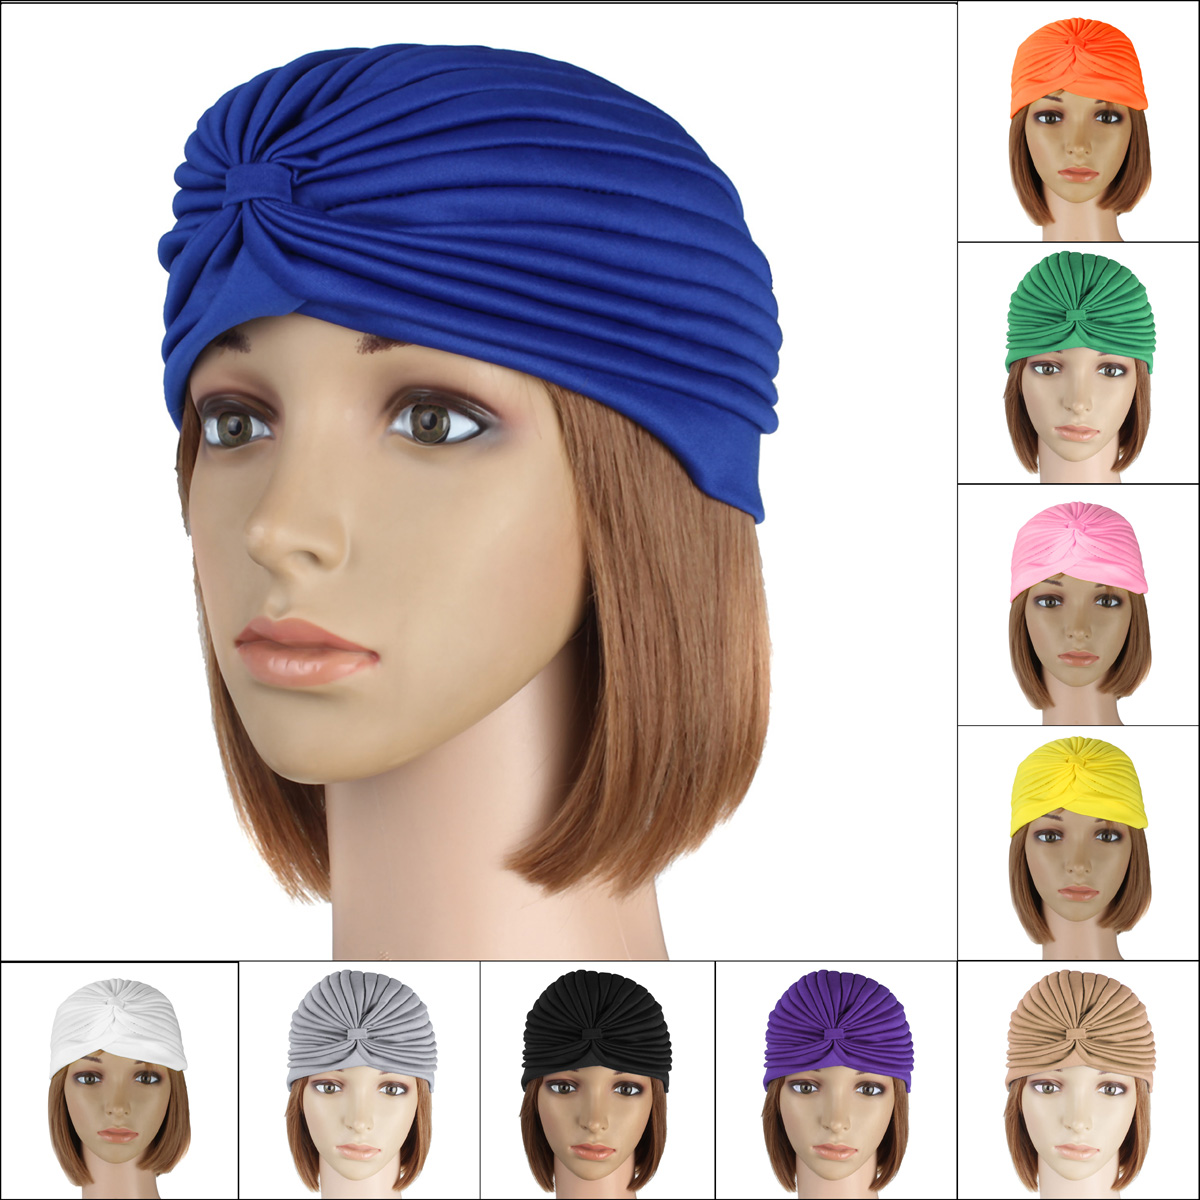 Delivery Mummy Puerperal Turban Chemo Costume Full Head Cover Wrap Hats Cap Hair Head Loss Scarf